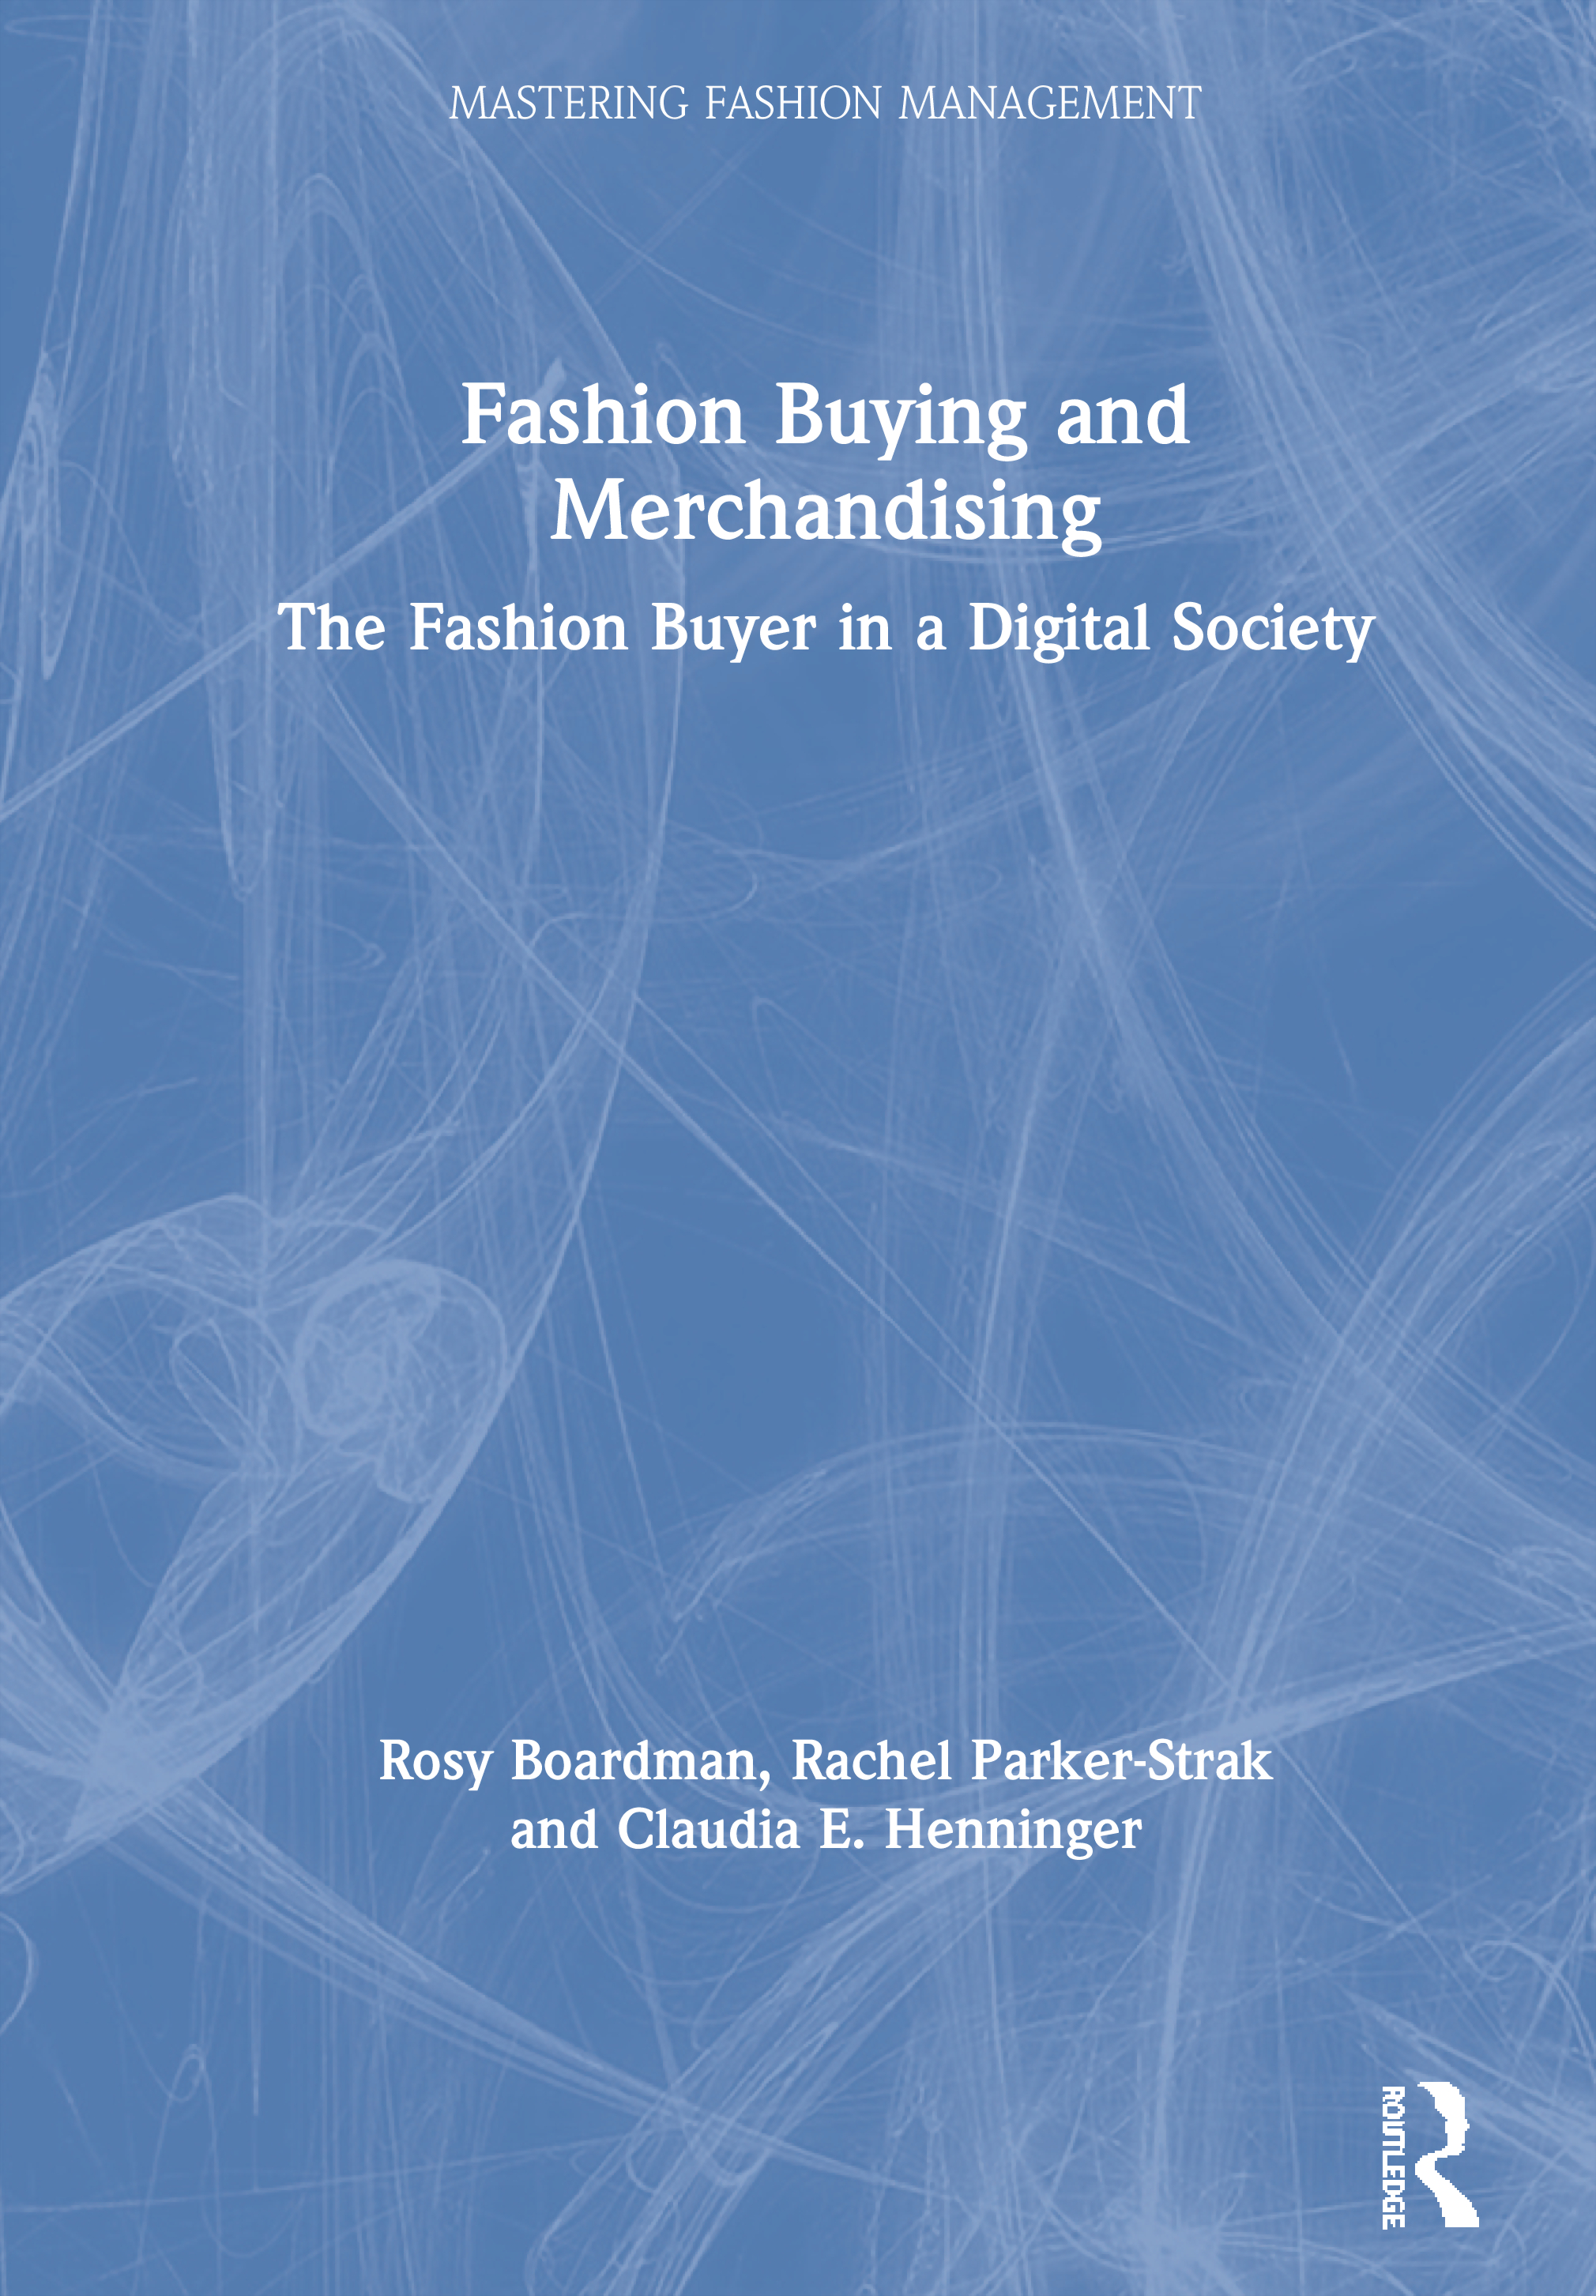 Fashion Buying and Merchandising: The Fashion Buyer in a Digital Society book cover